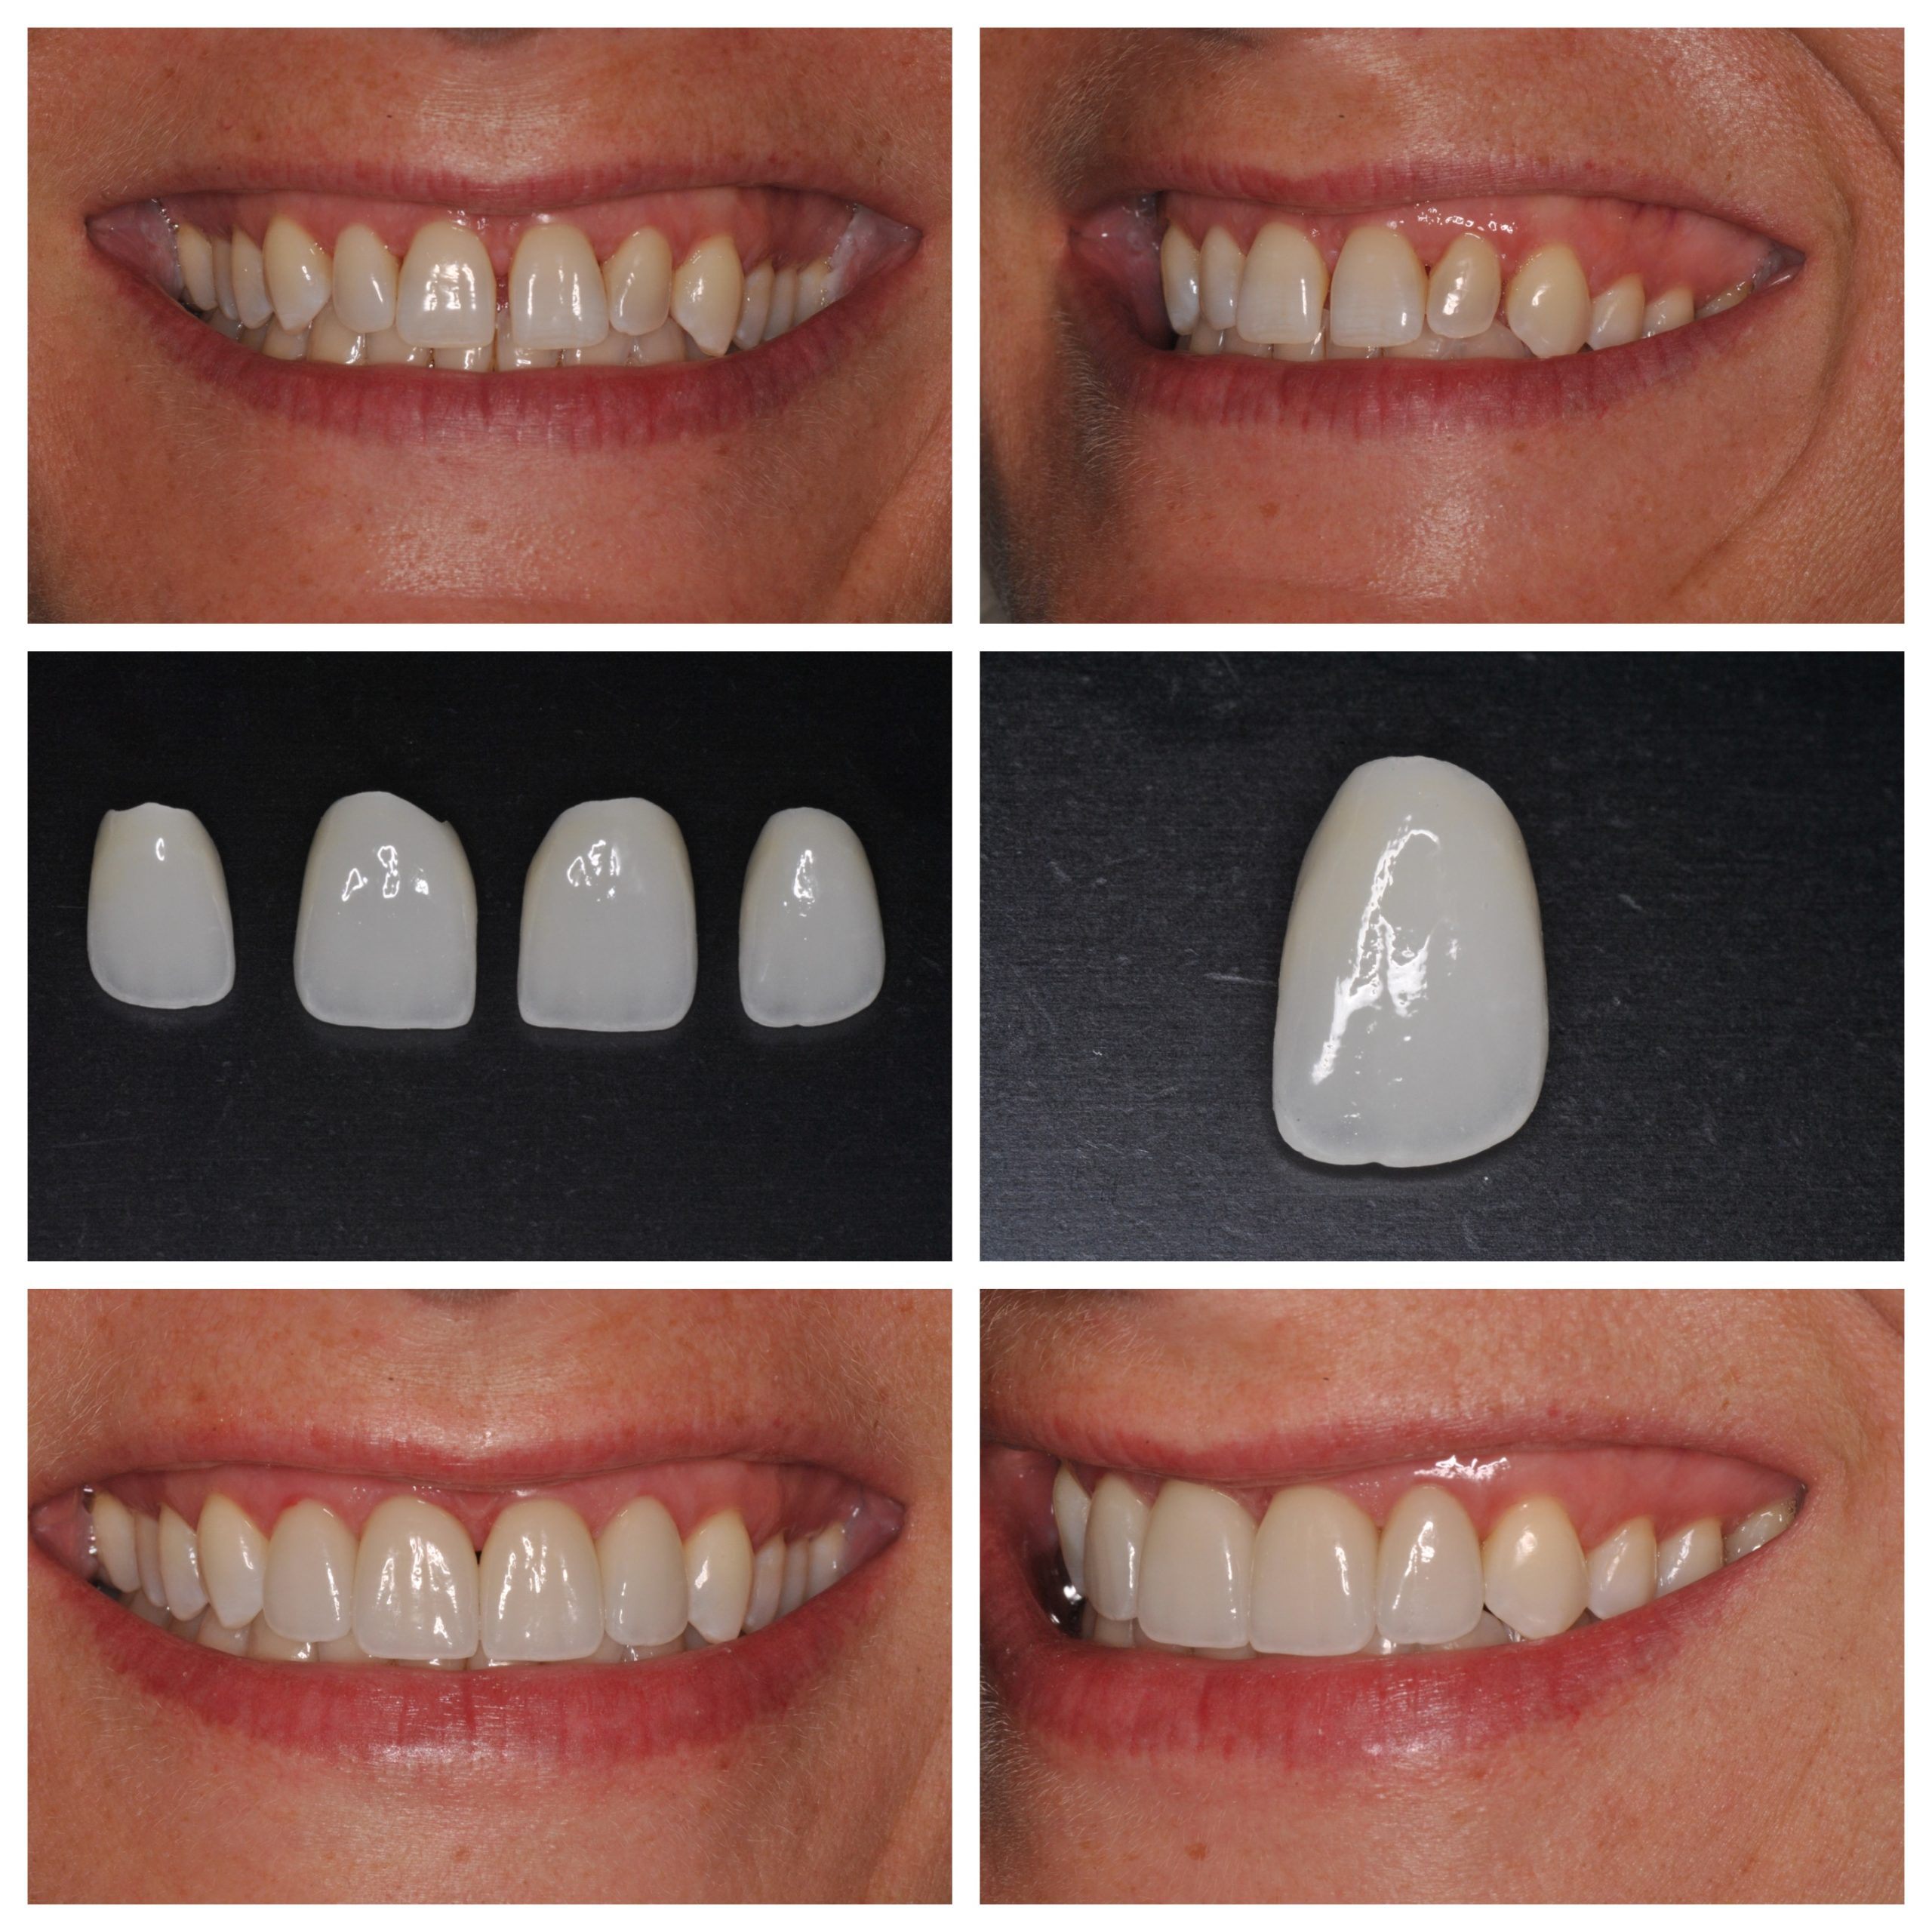 Smile Spotlight: Amy  Love Your Smile with Porcelain Veneers